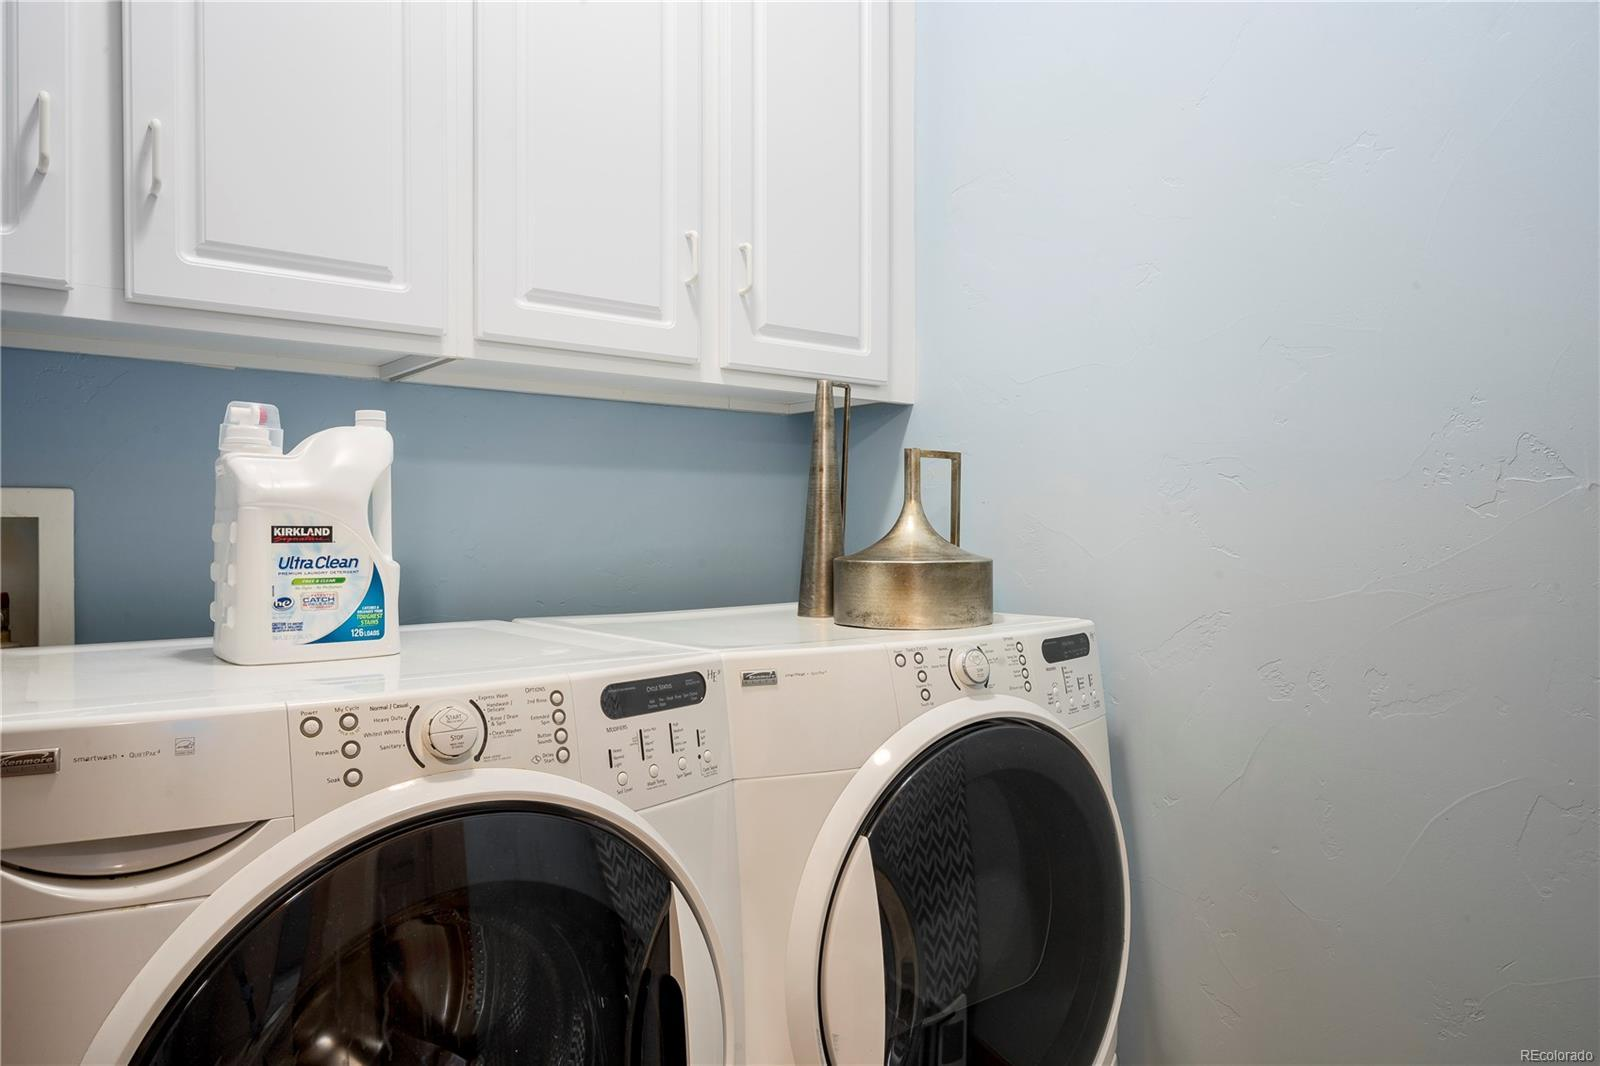 Laundry Room with Washer, Dryer, and Wall Cabinets.